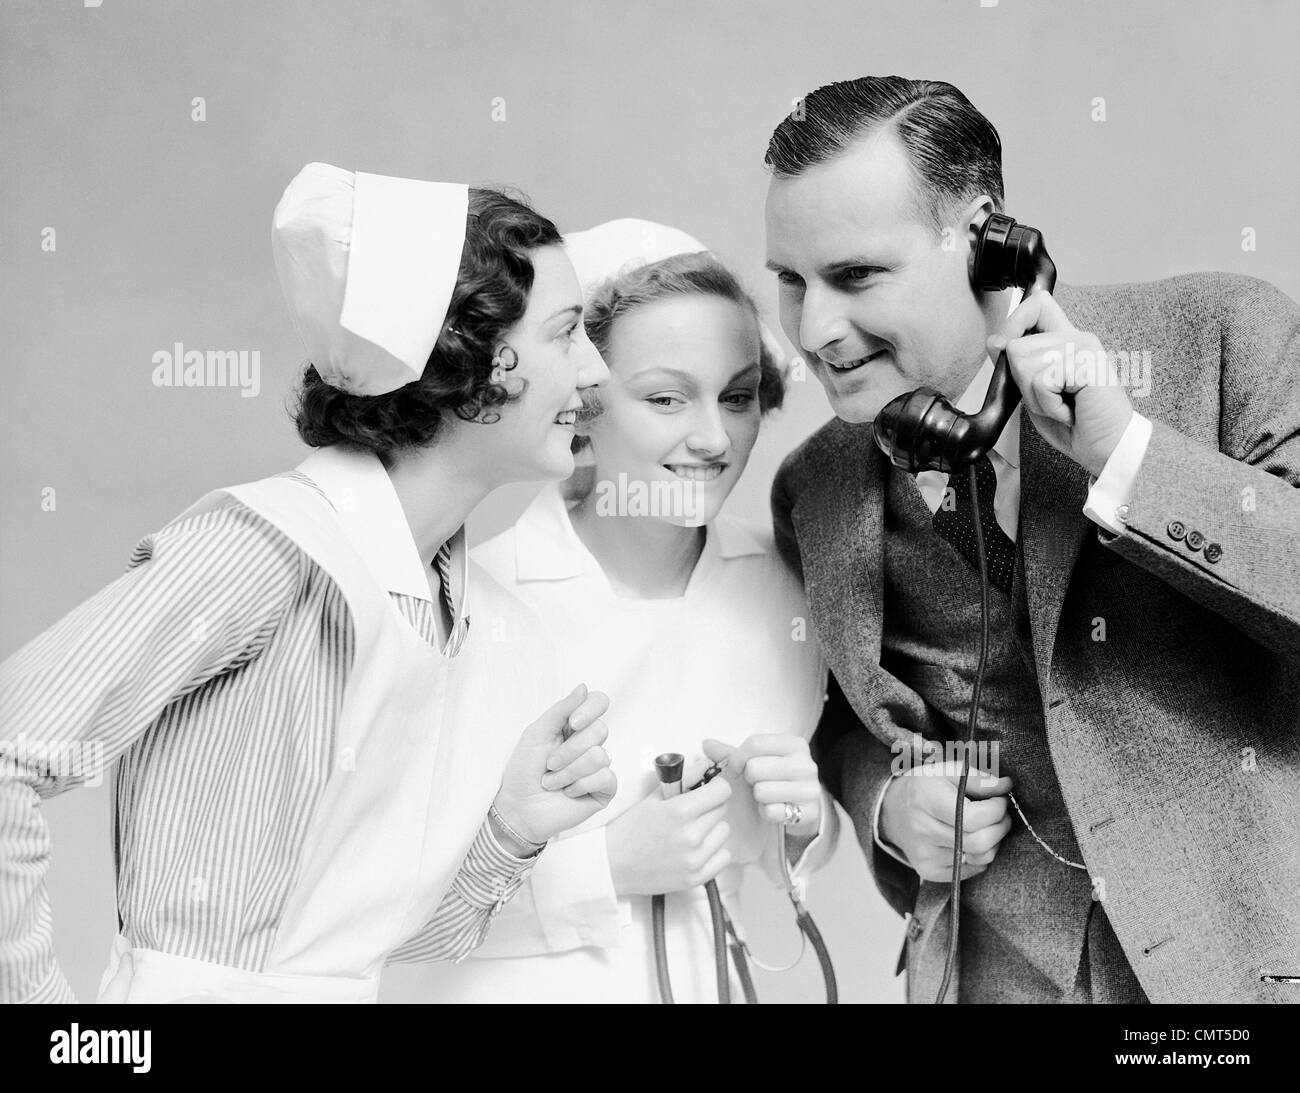 1930s SMILING MAN IN SUIT NEW FATHER WITH TWO WOMEN NURSES TALKING GOOD NEWS ON TELEPHONE HOSPITAL MEDICAL SITUATION - Stock Image